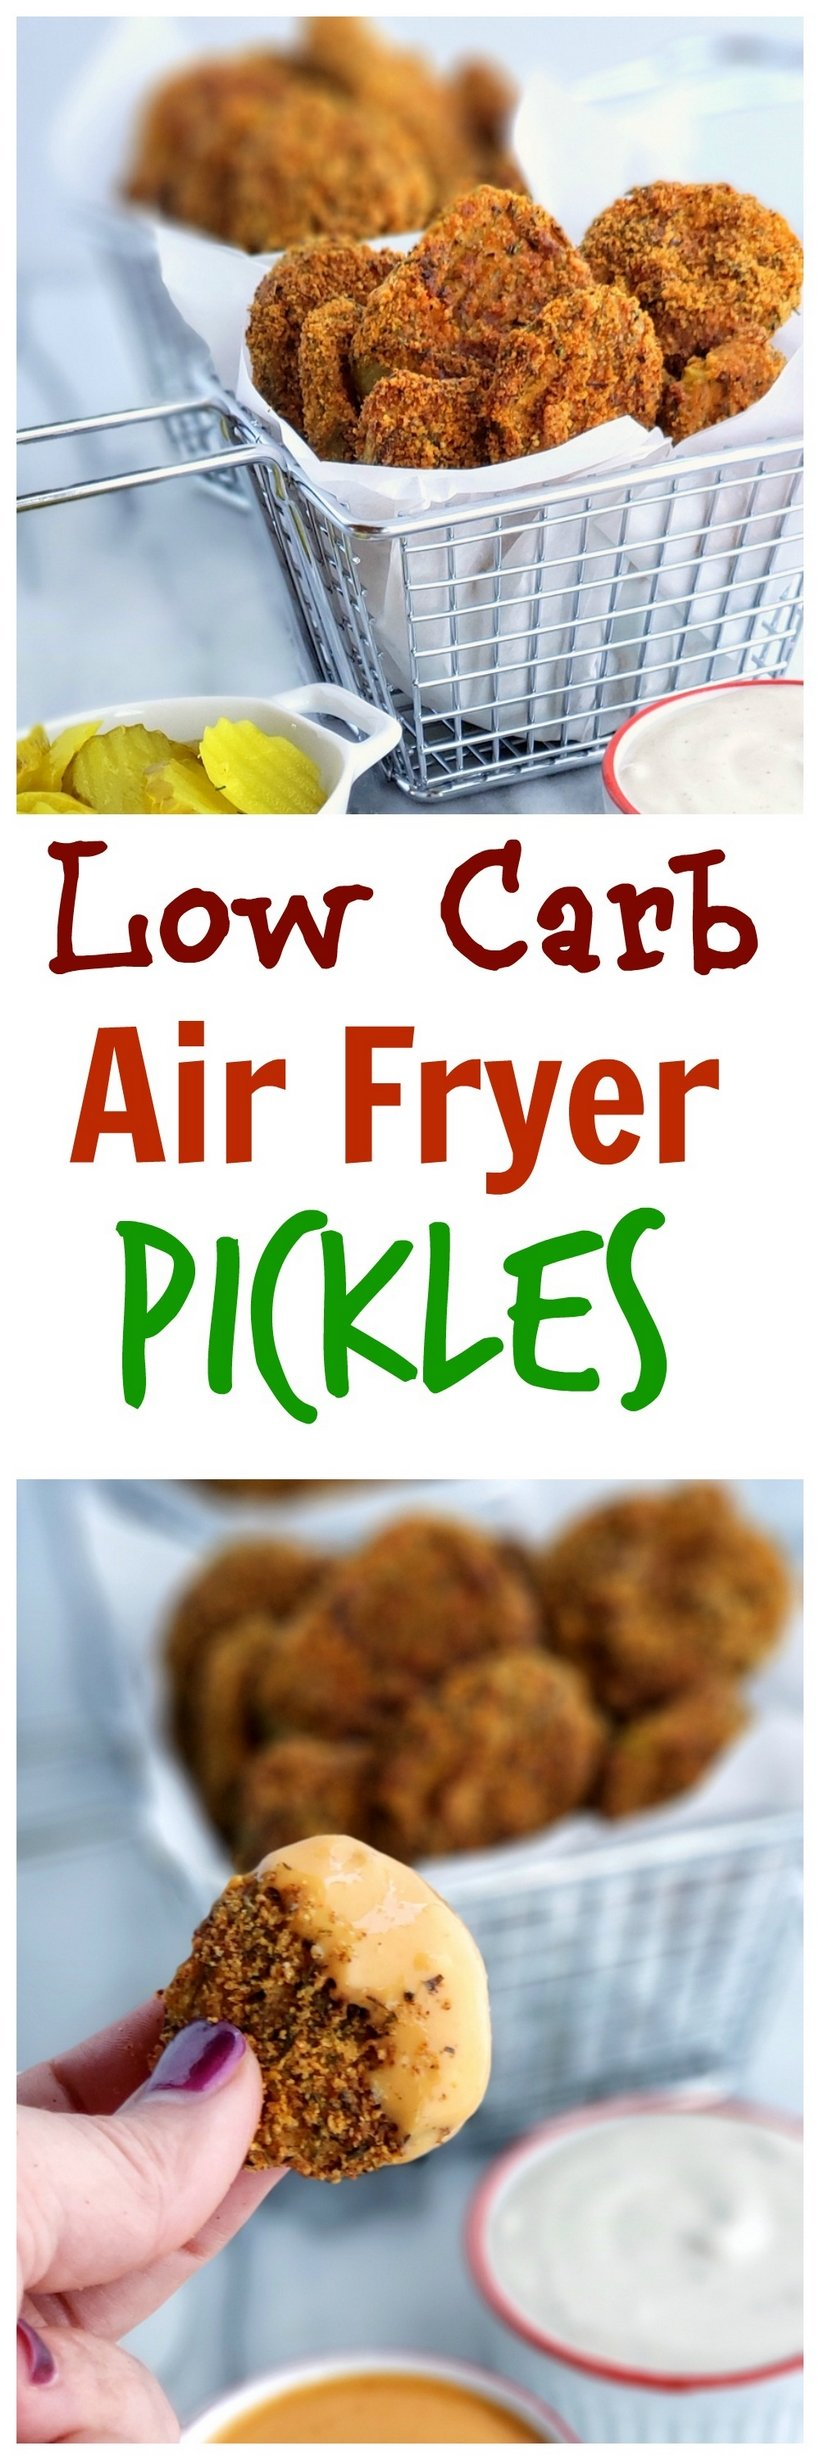 Whip up these Low Carb Air Fryer Pickles in minutes. The perfect guiltless snack for any gathering. #noblepig #lowcarb #keto